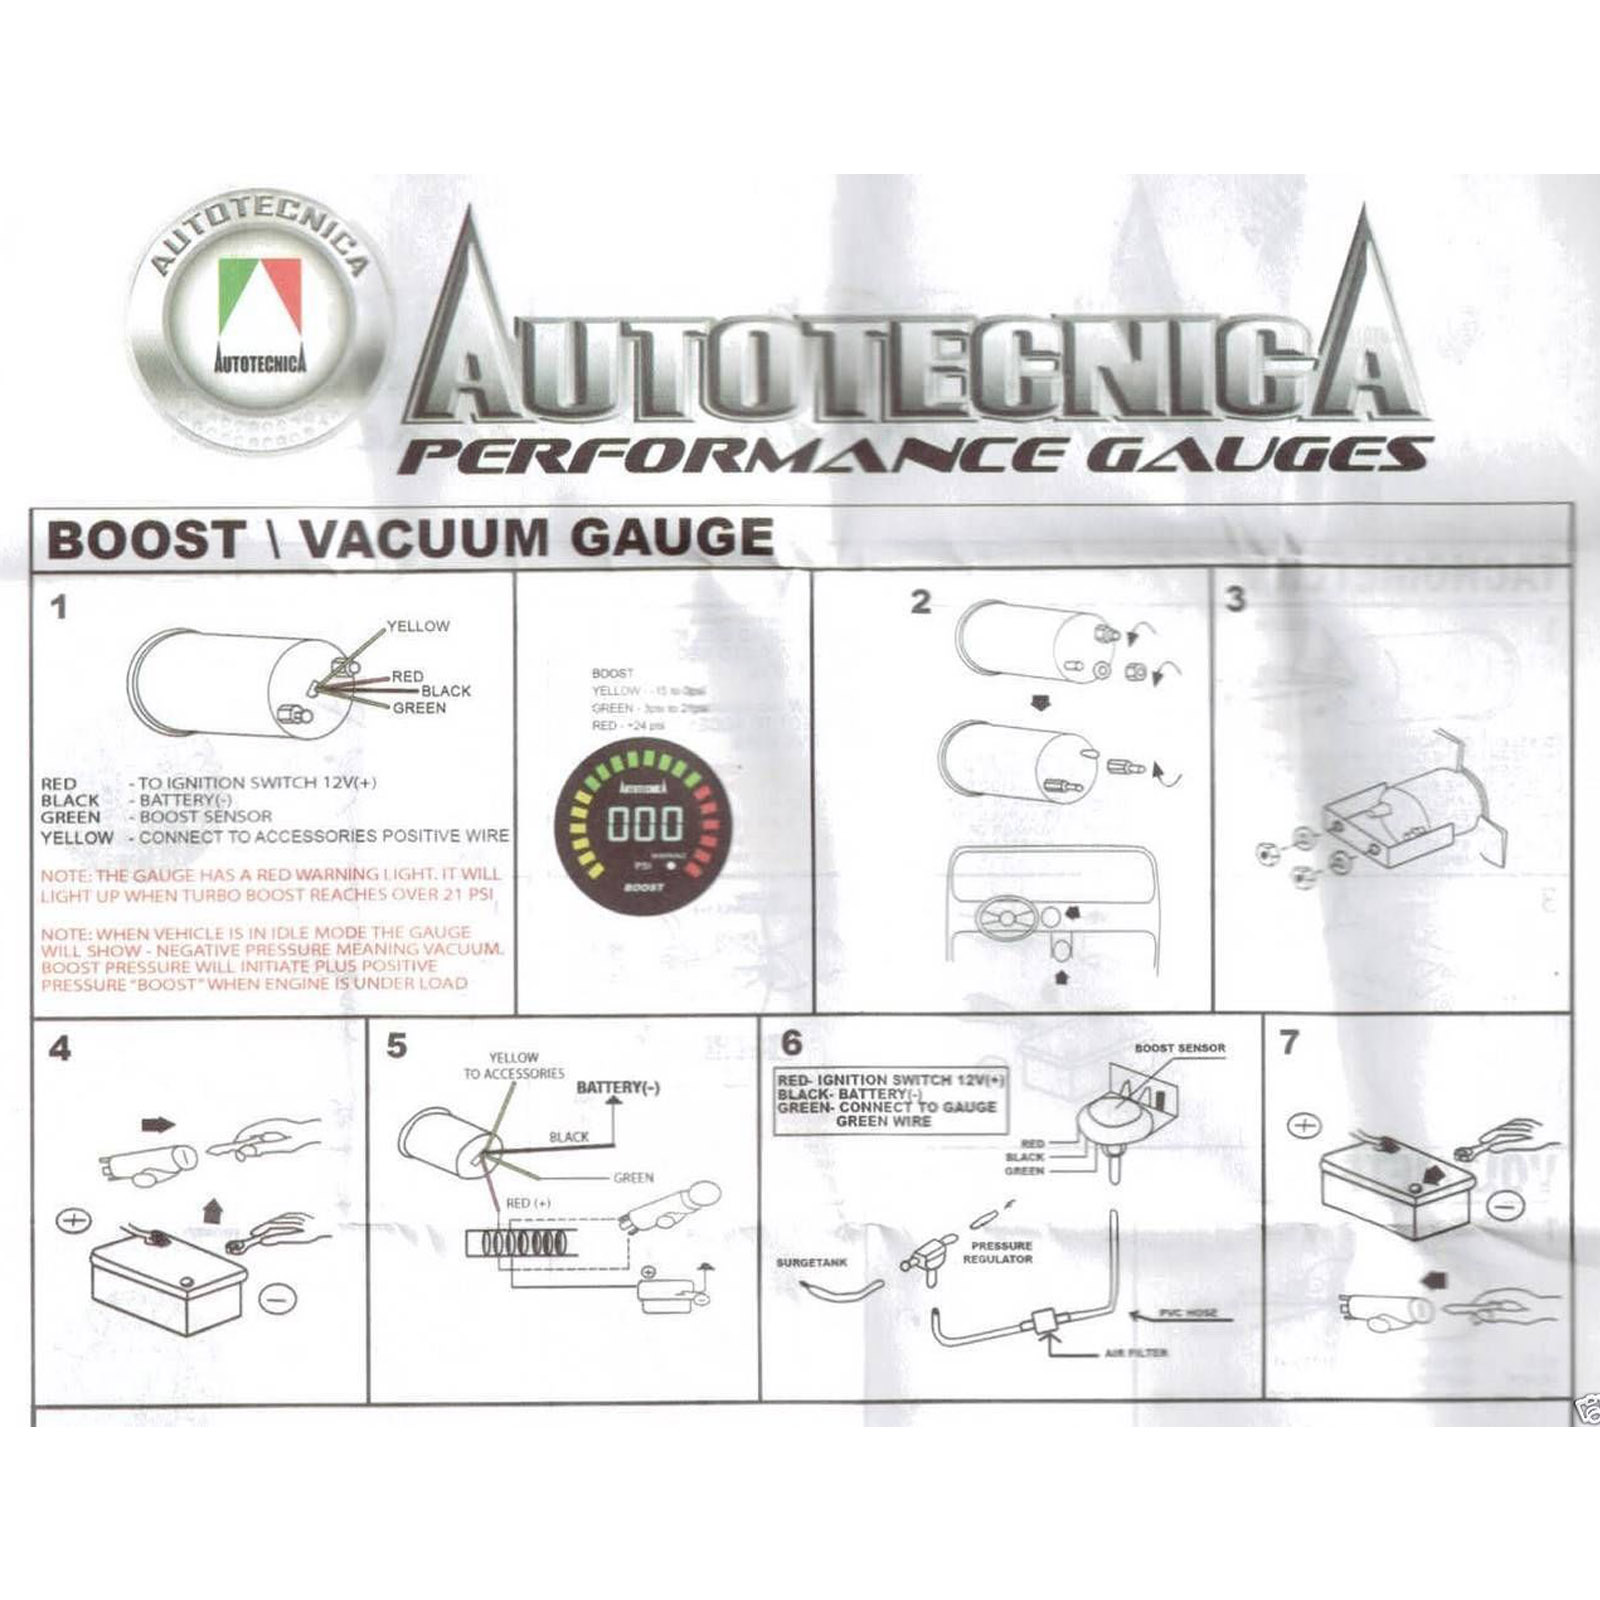 autotecnica water temp gauge wiring diagram parts of a sheep electronic digital turbo petrol boost 52mm for s15 manufacturer number gldb